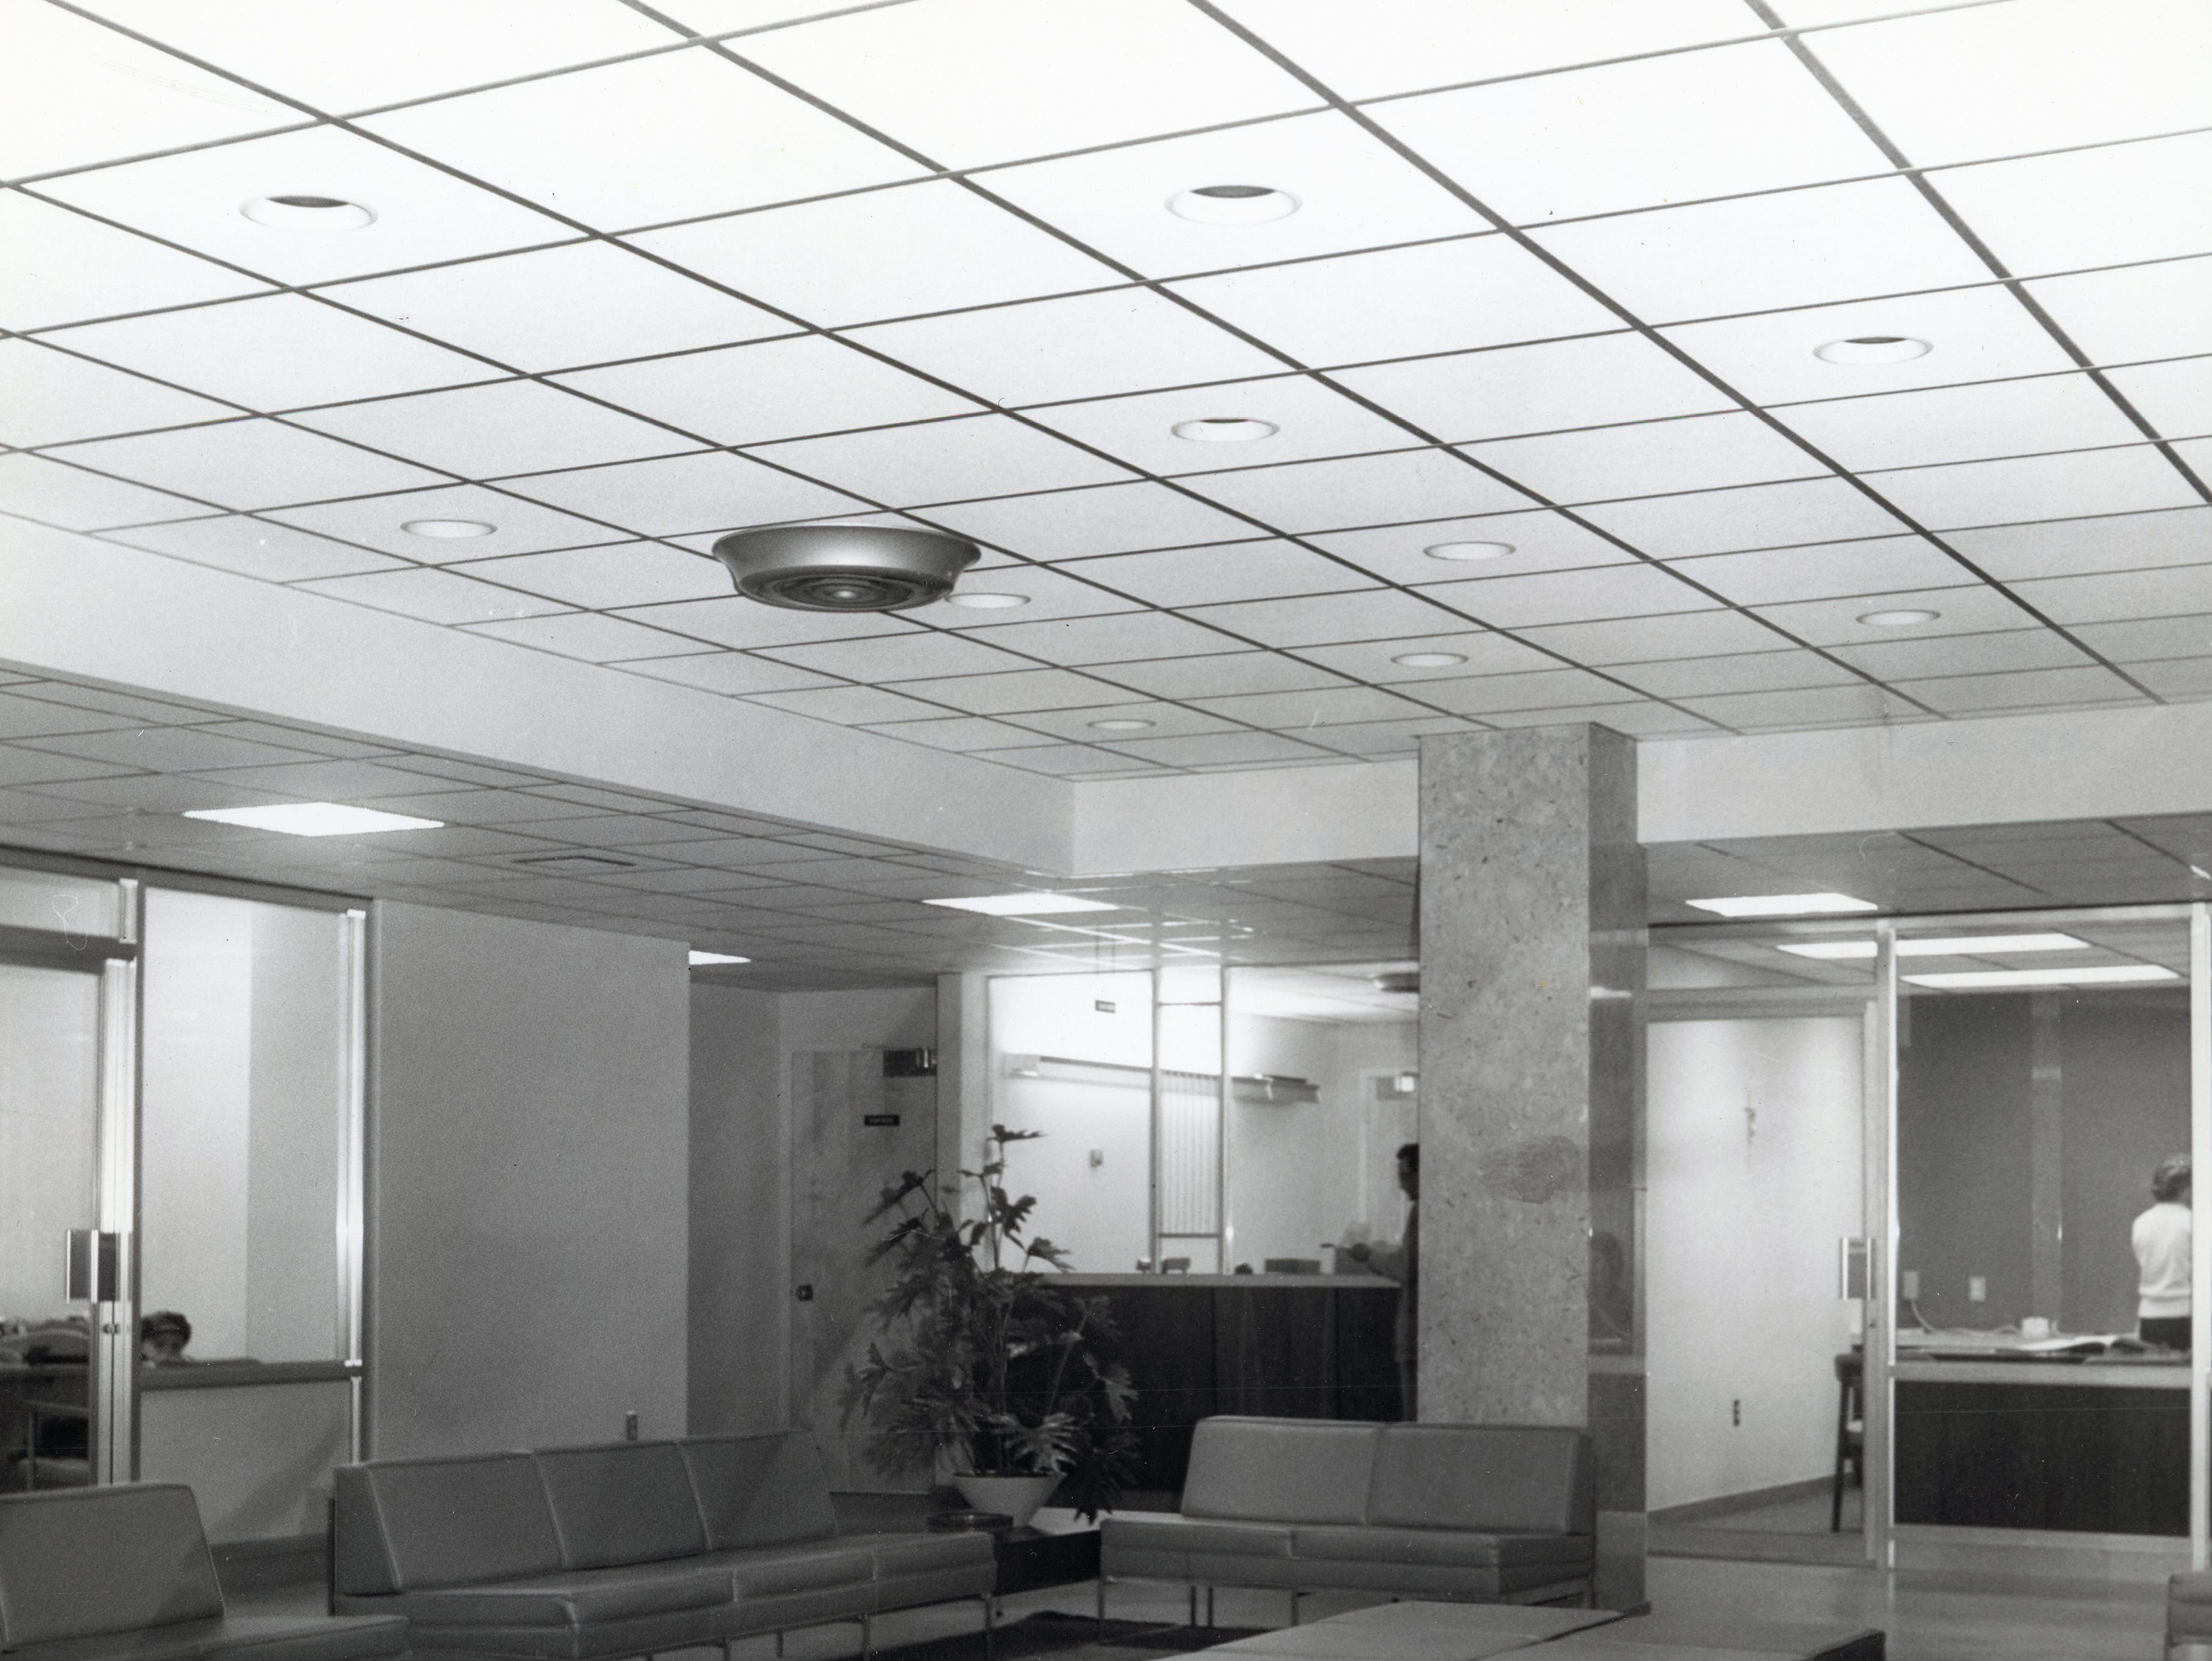 Awaiting the first patients, this is the general waiting room of the new Annunciation Wing at St. Mary's Hospital in March 1966.